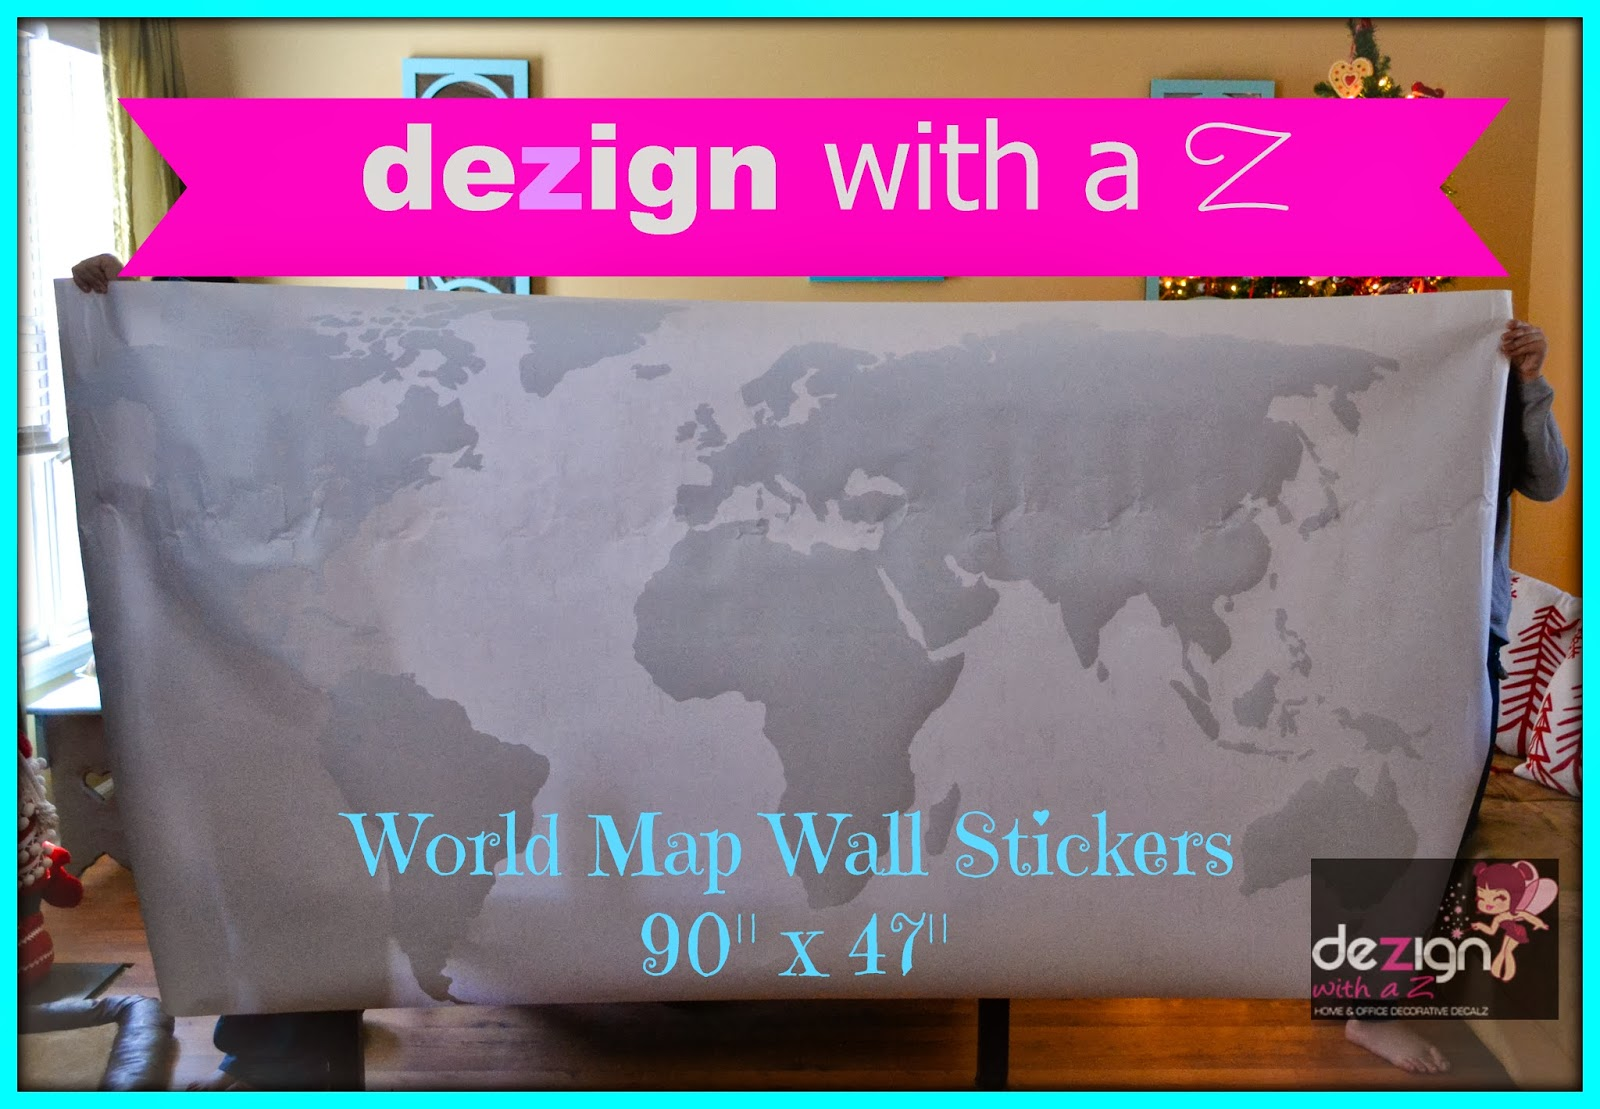 Wall Decals Dezign With A Z : Review dezign with a z world map wall sticker pack the